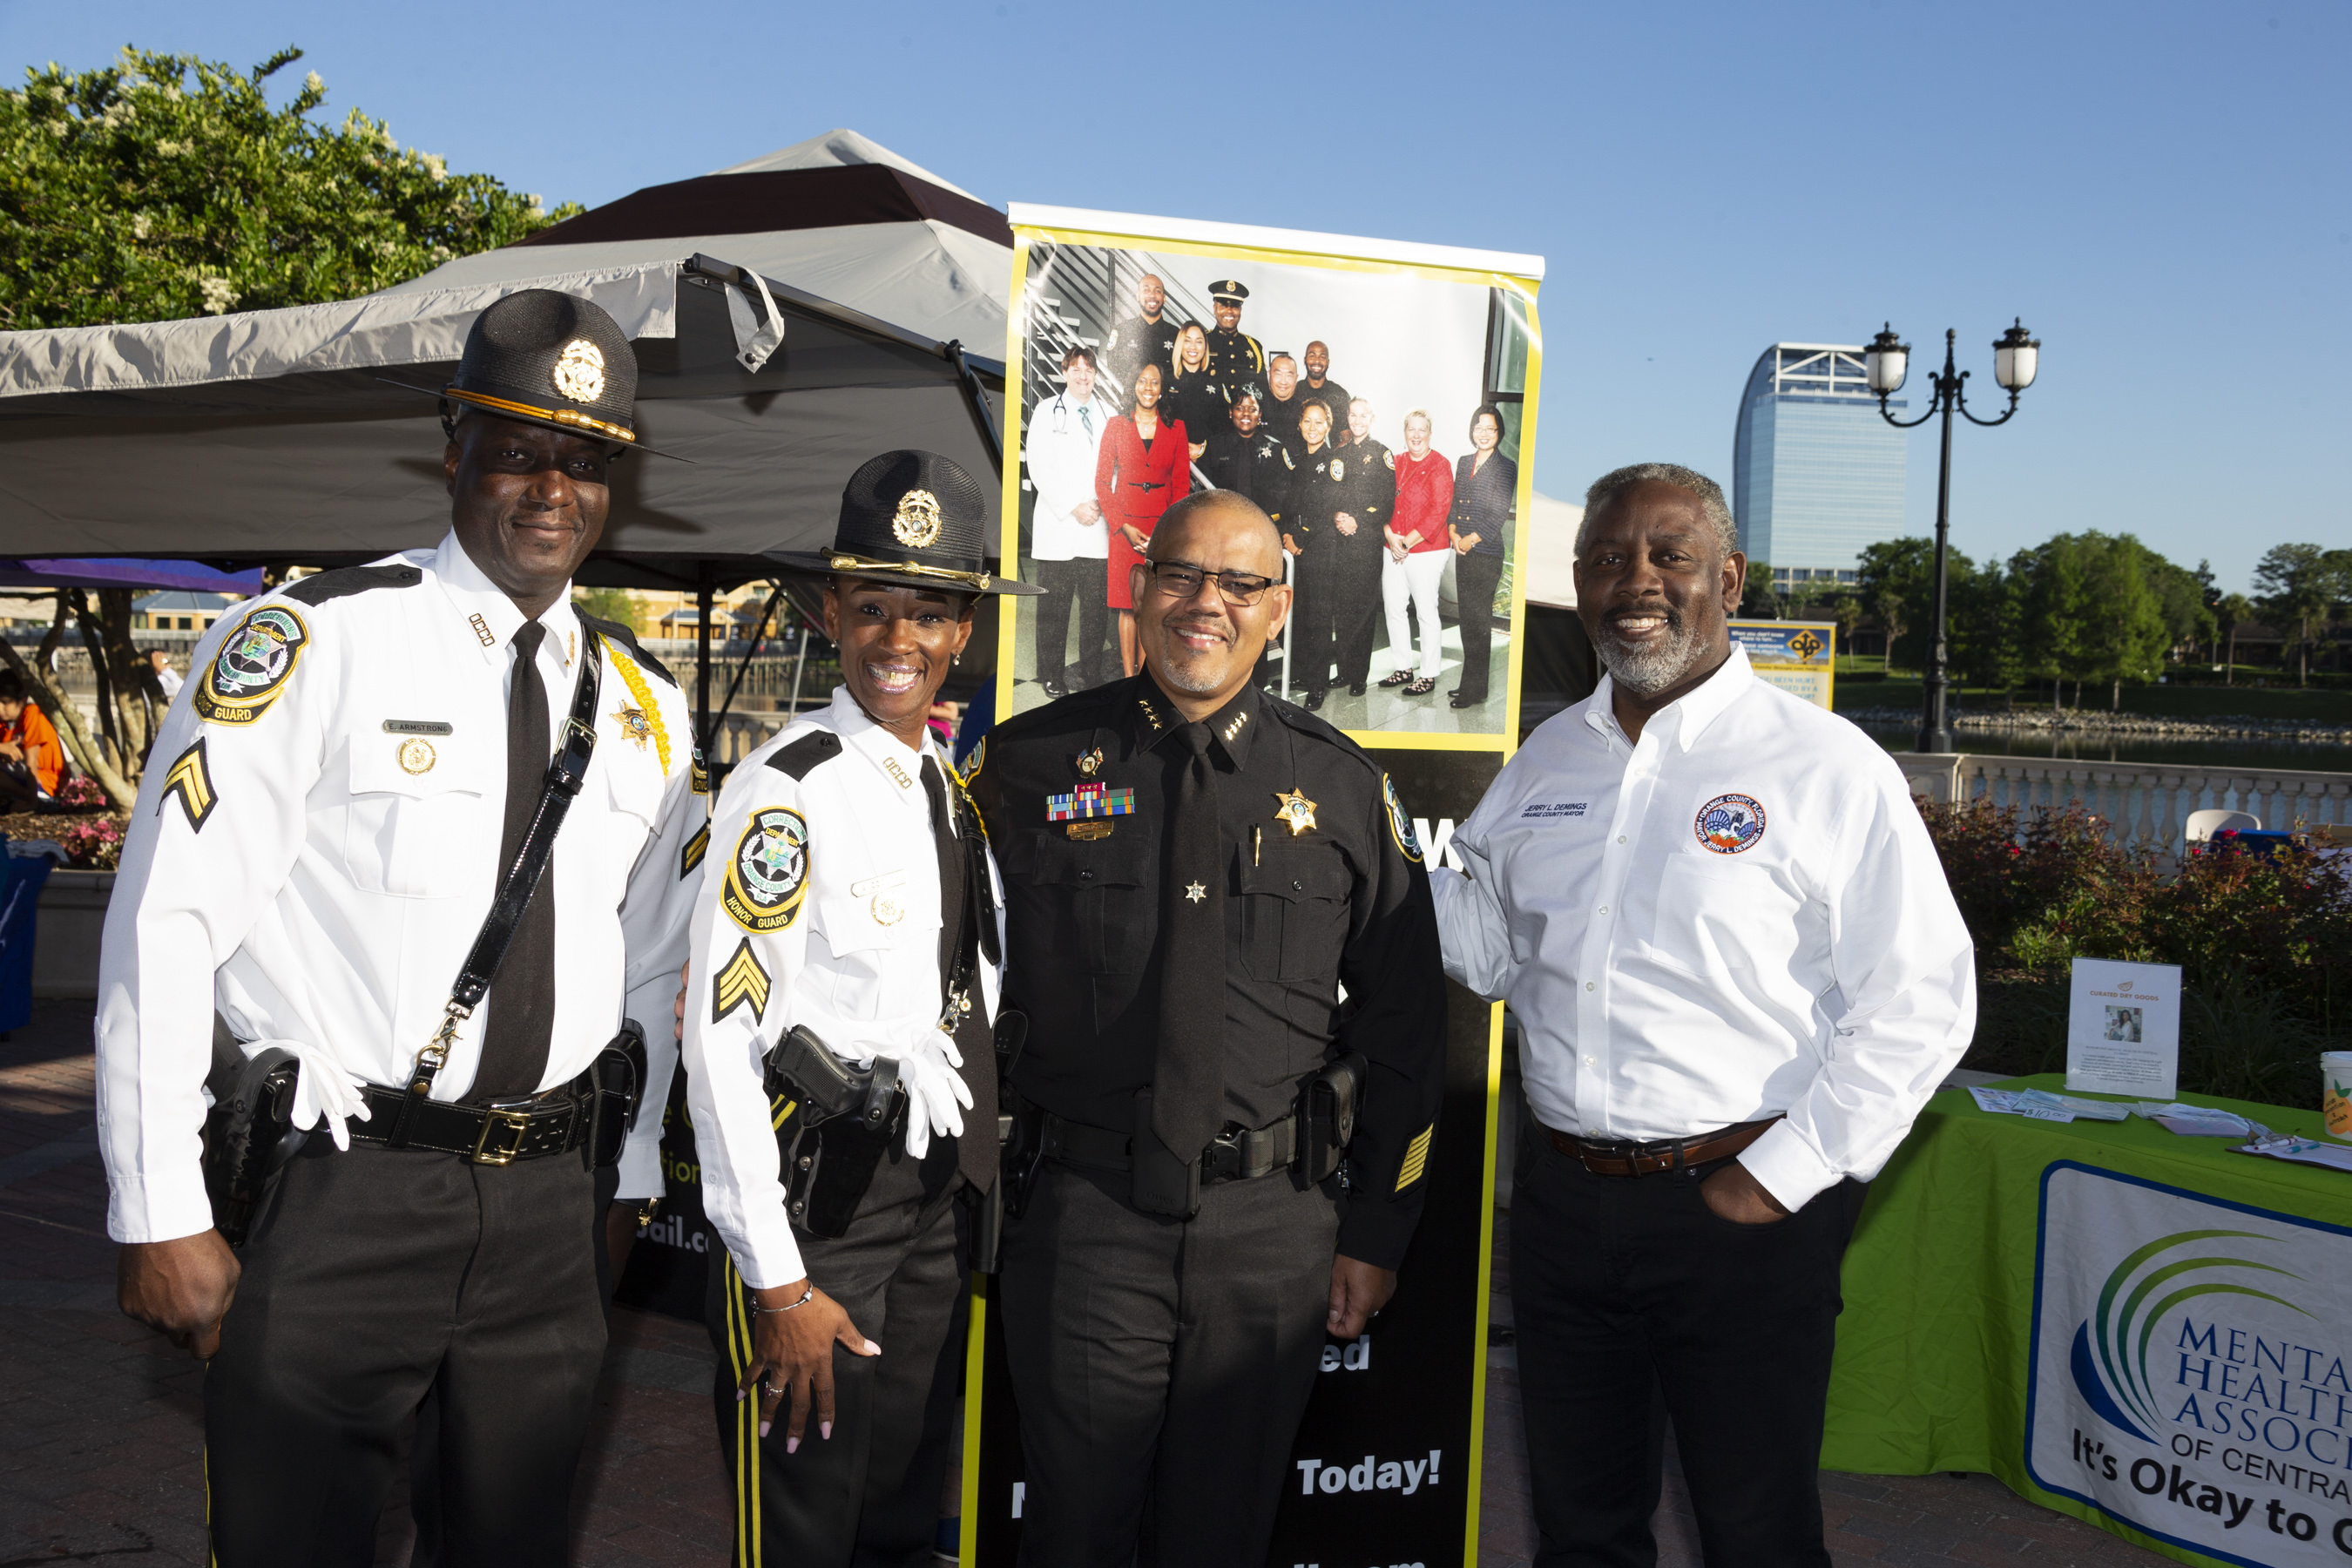 Orange County Corrections officers, Orange County Corrections Chief Louis A. Quiñones and Orange County Mayor Jerry L. Demings standing outside during the Greater Orlando NAMIWalks event .